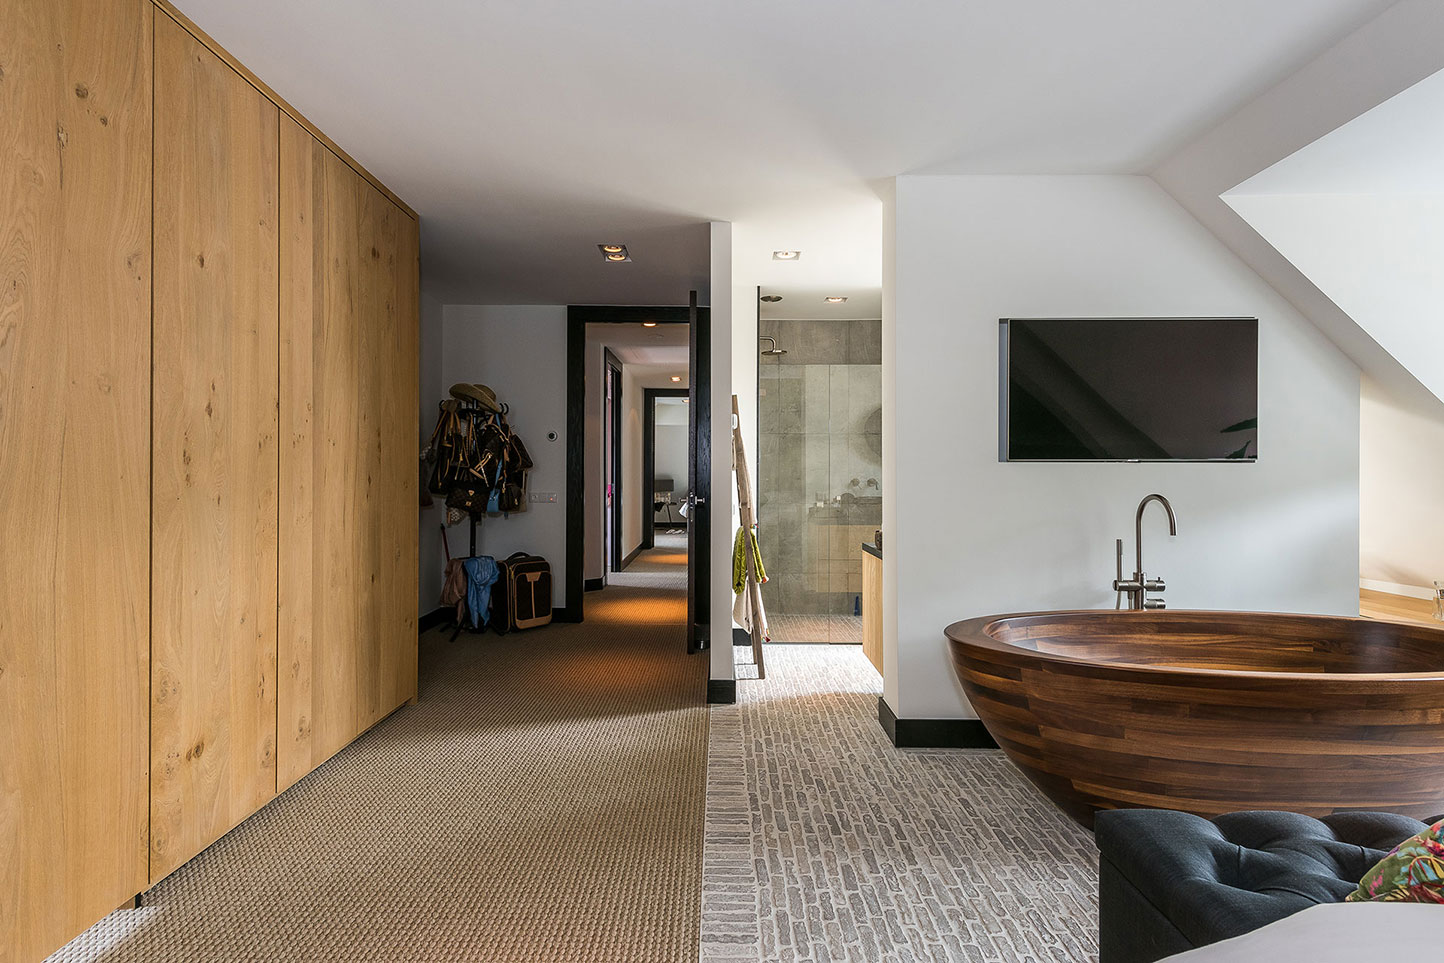 Image no. 4 of Wooden bathtub Baula in Walnut - Residence in Netherlands